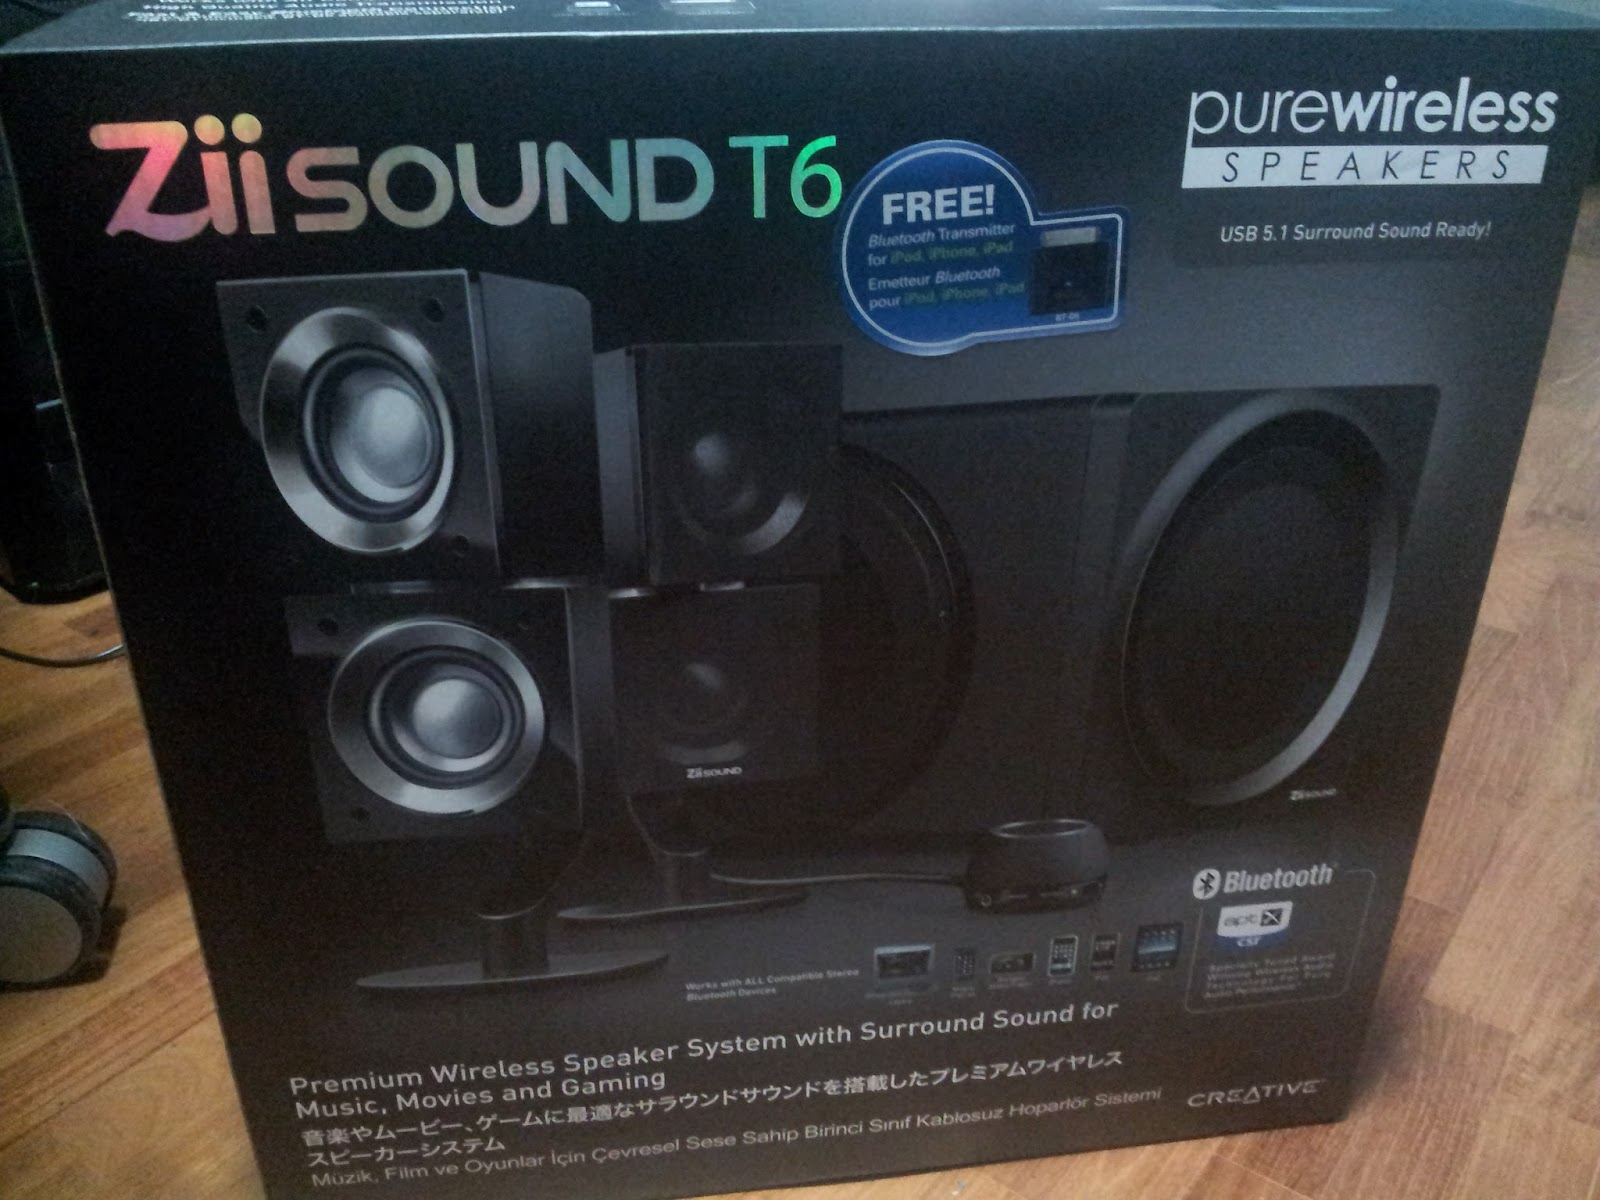 My Journey Into Music Creative Zii Sound T6 Pictures 1 Set System The Incoming Of Speakers